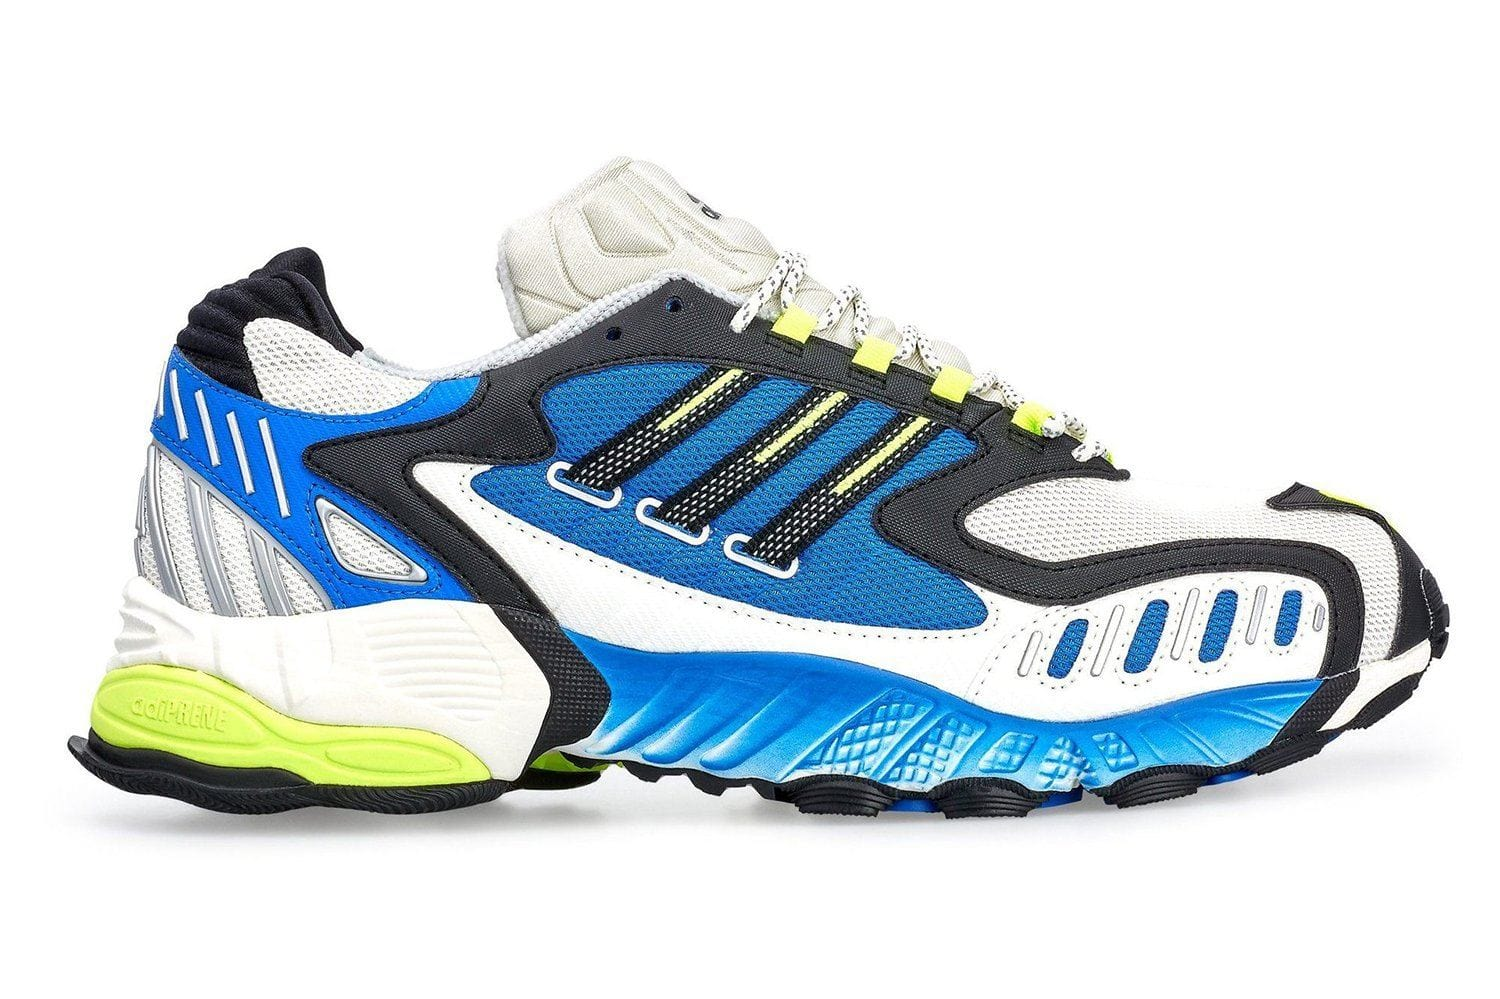 TORSION TRDC - EE7999 MENS FOOTWEAR ADIDAS